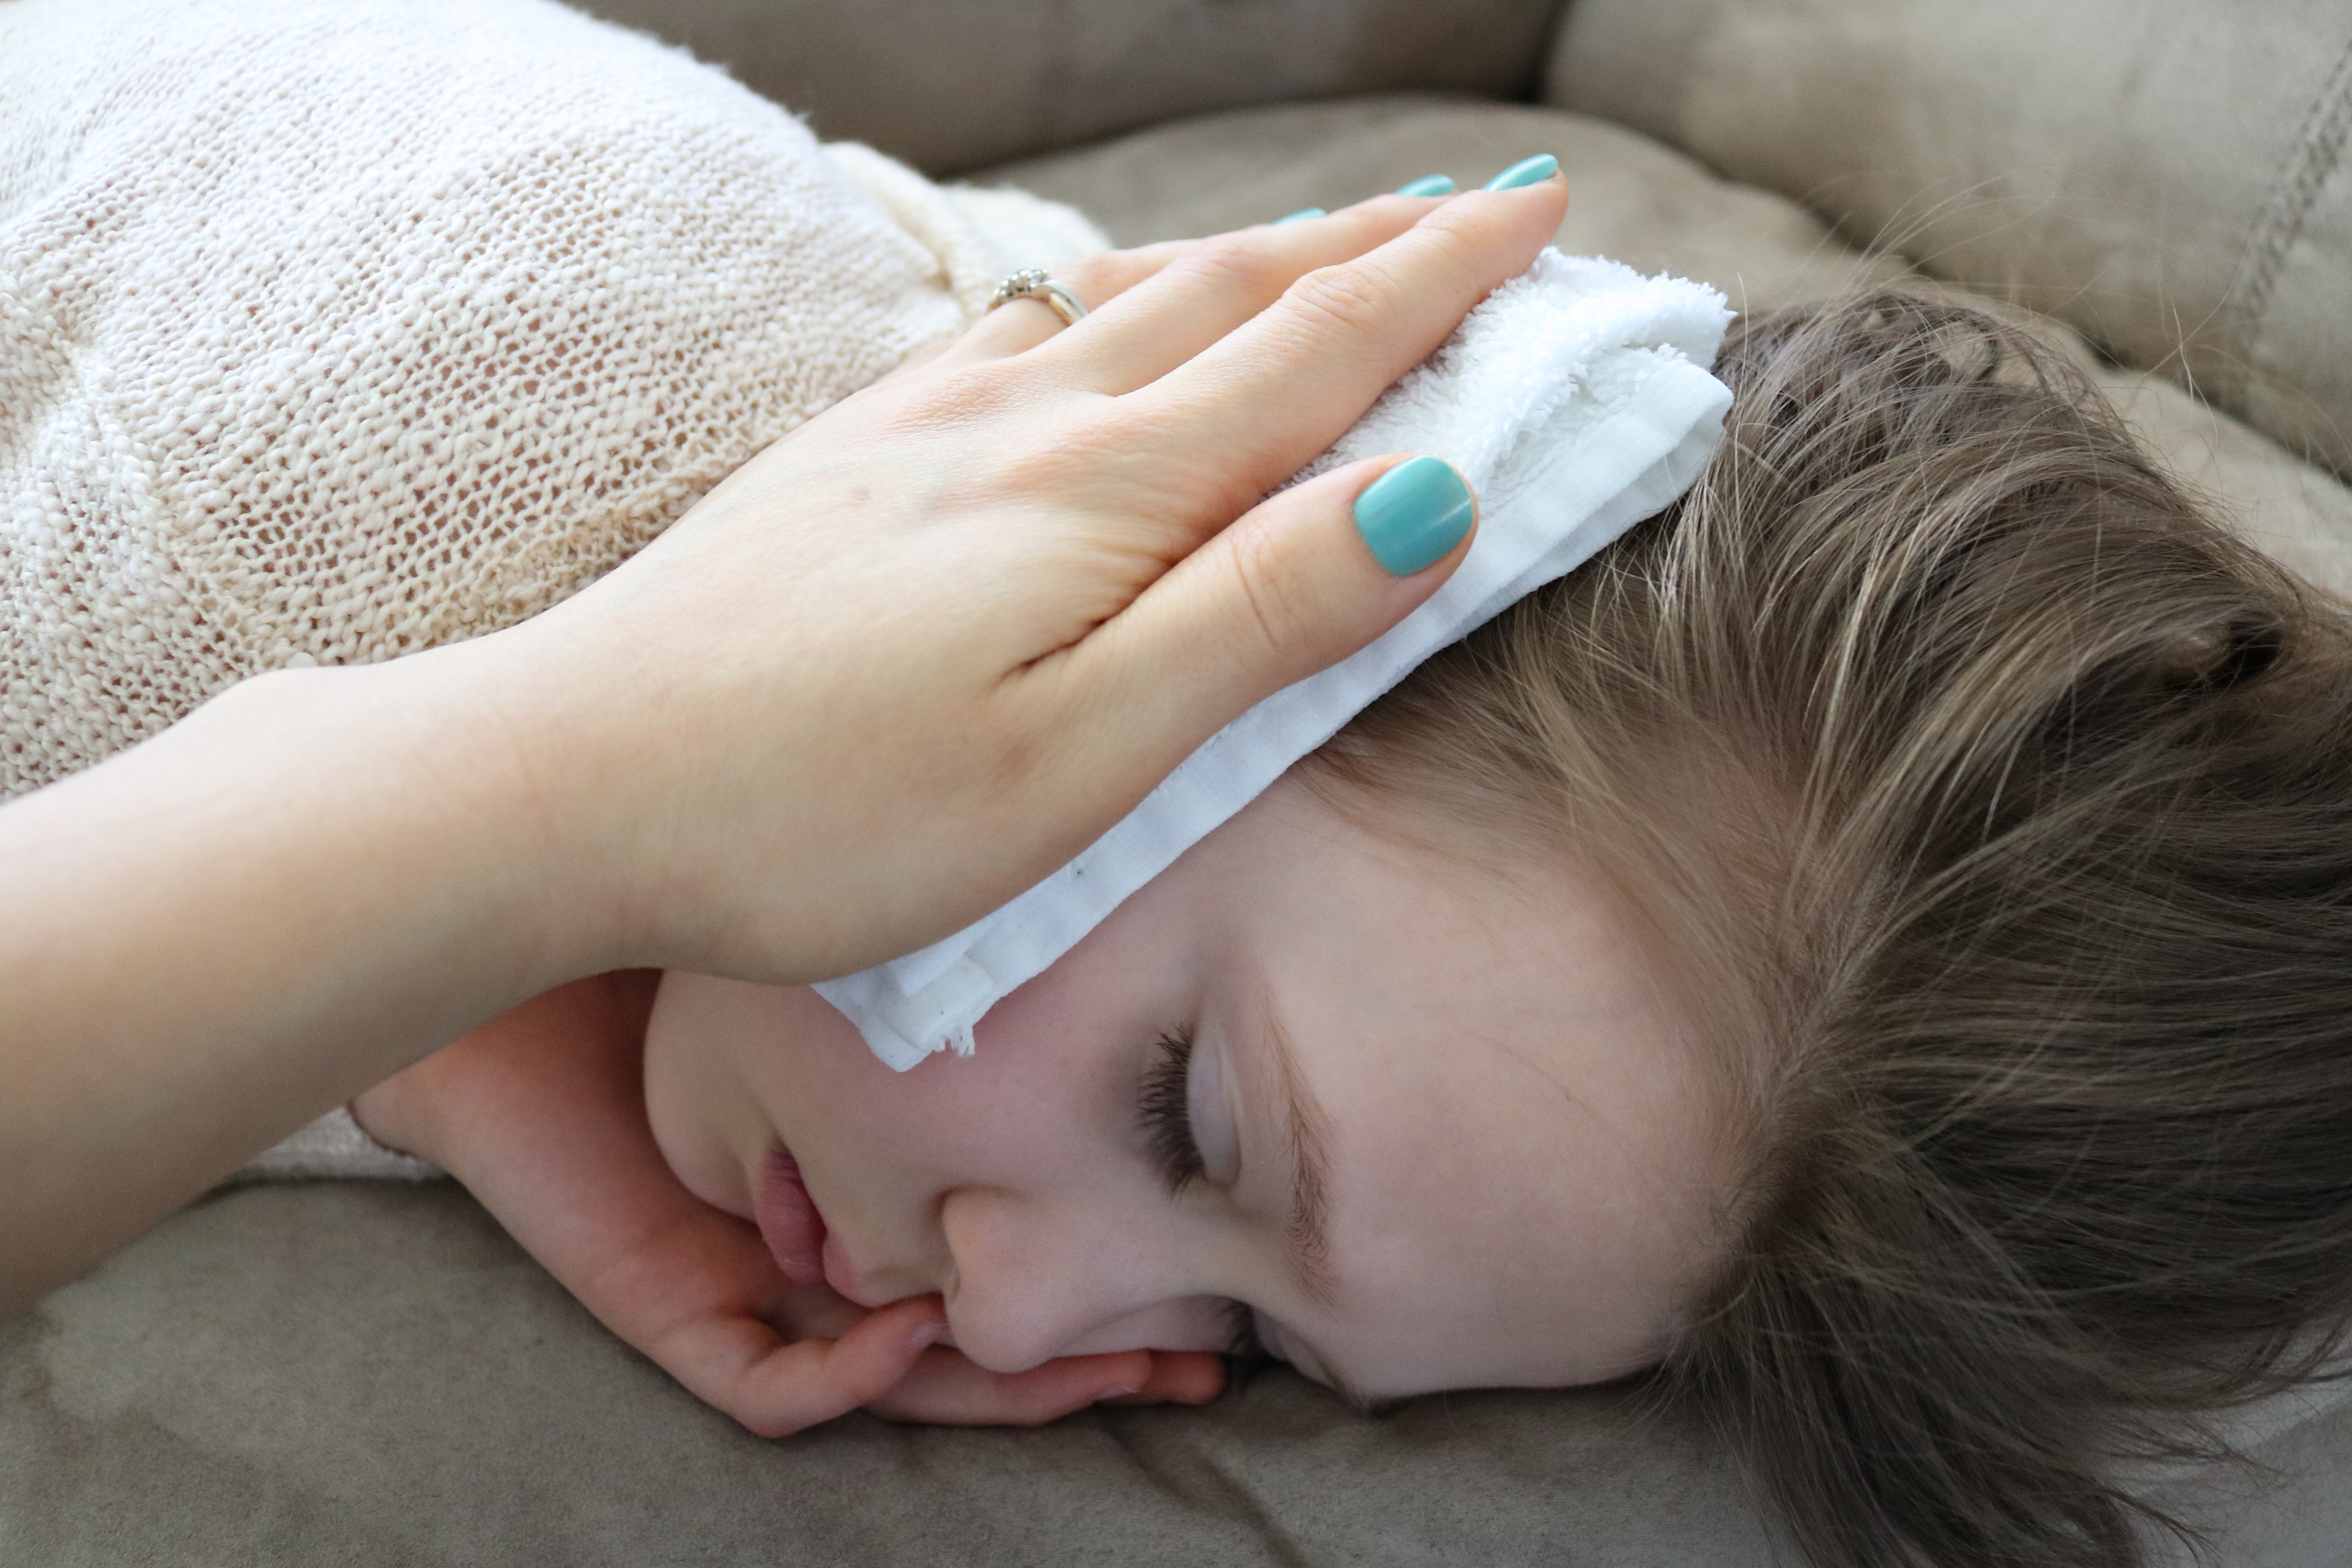 Wet, warm washcloth over the ear to help with earache, ear infection.